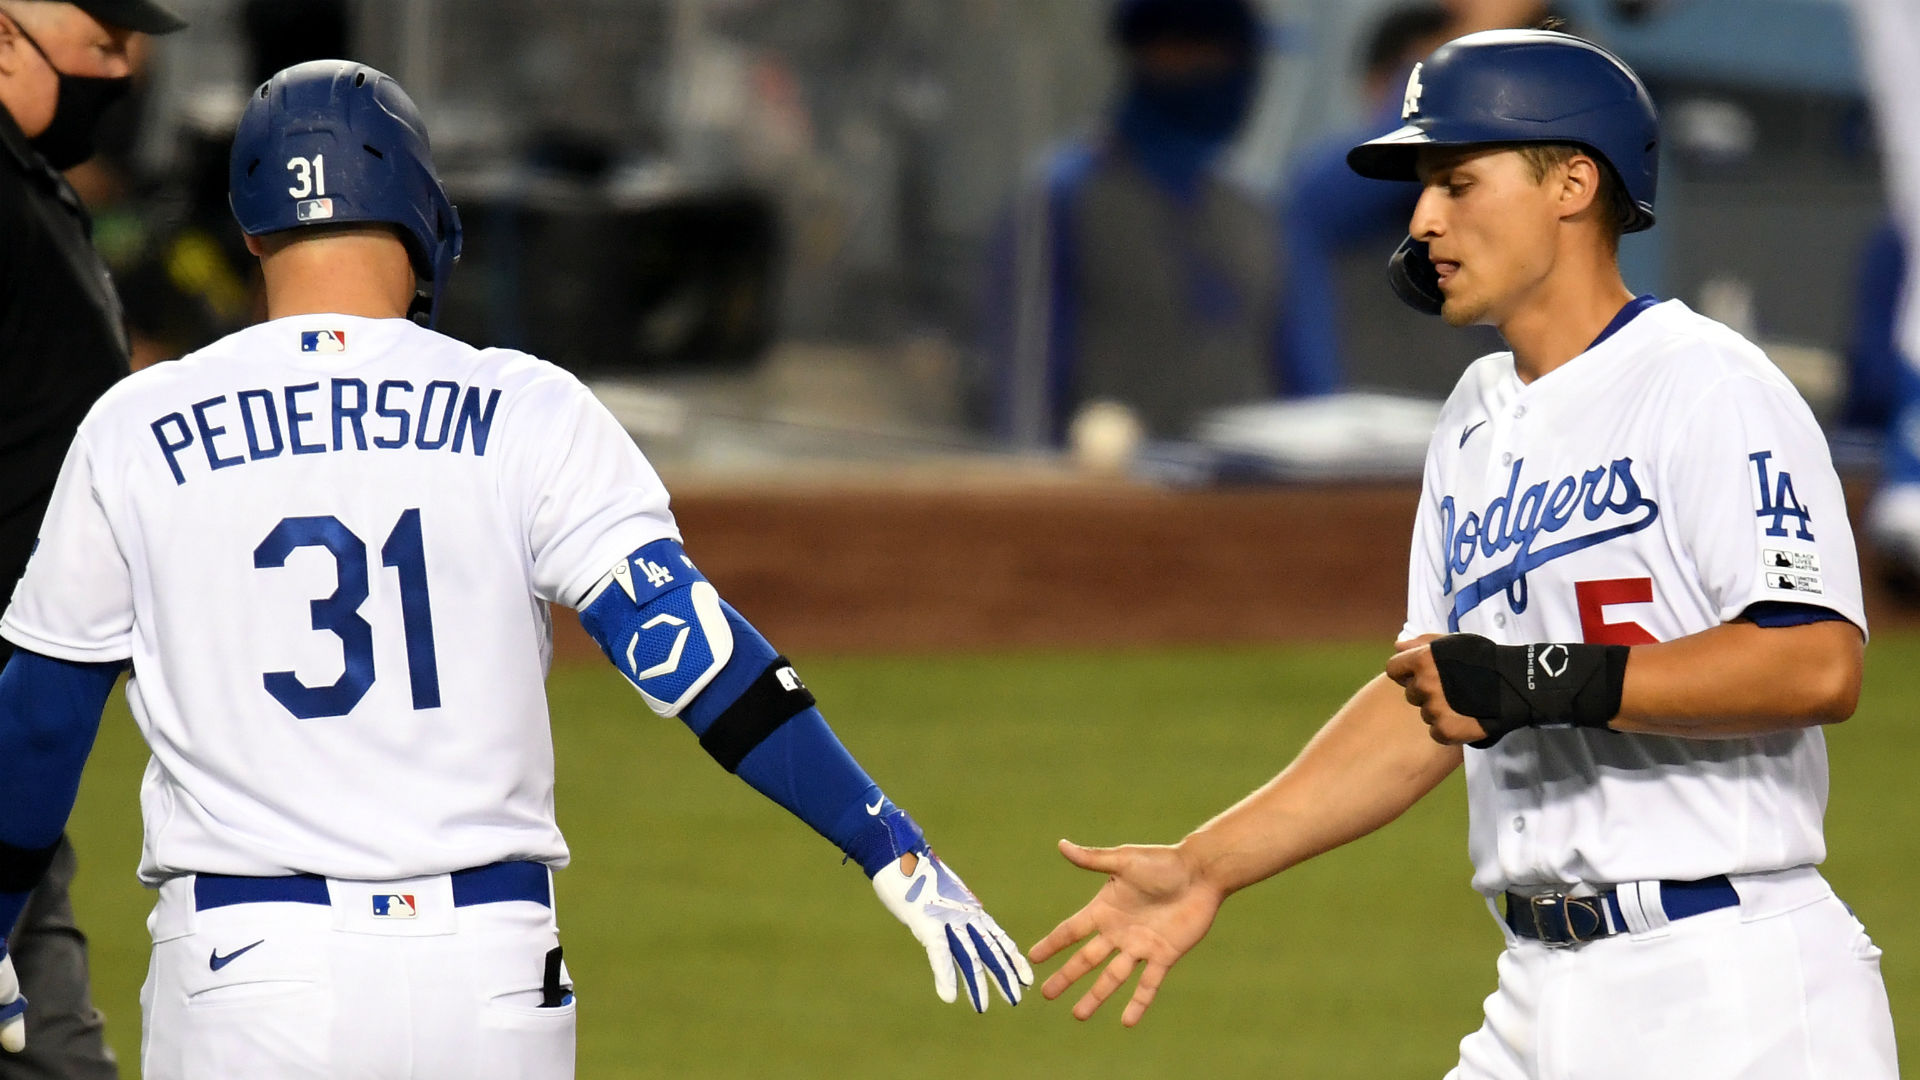 Dodgers vs. Giants score: Los Angeles takes Opening Day win over rival San Francisco 1